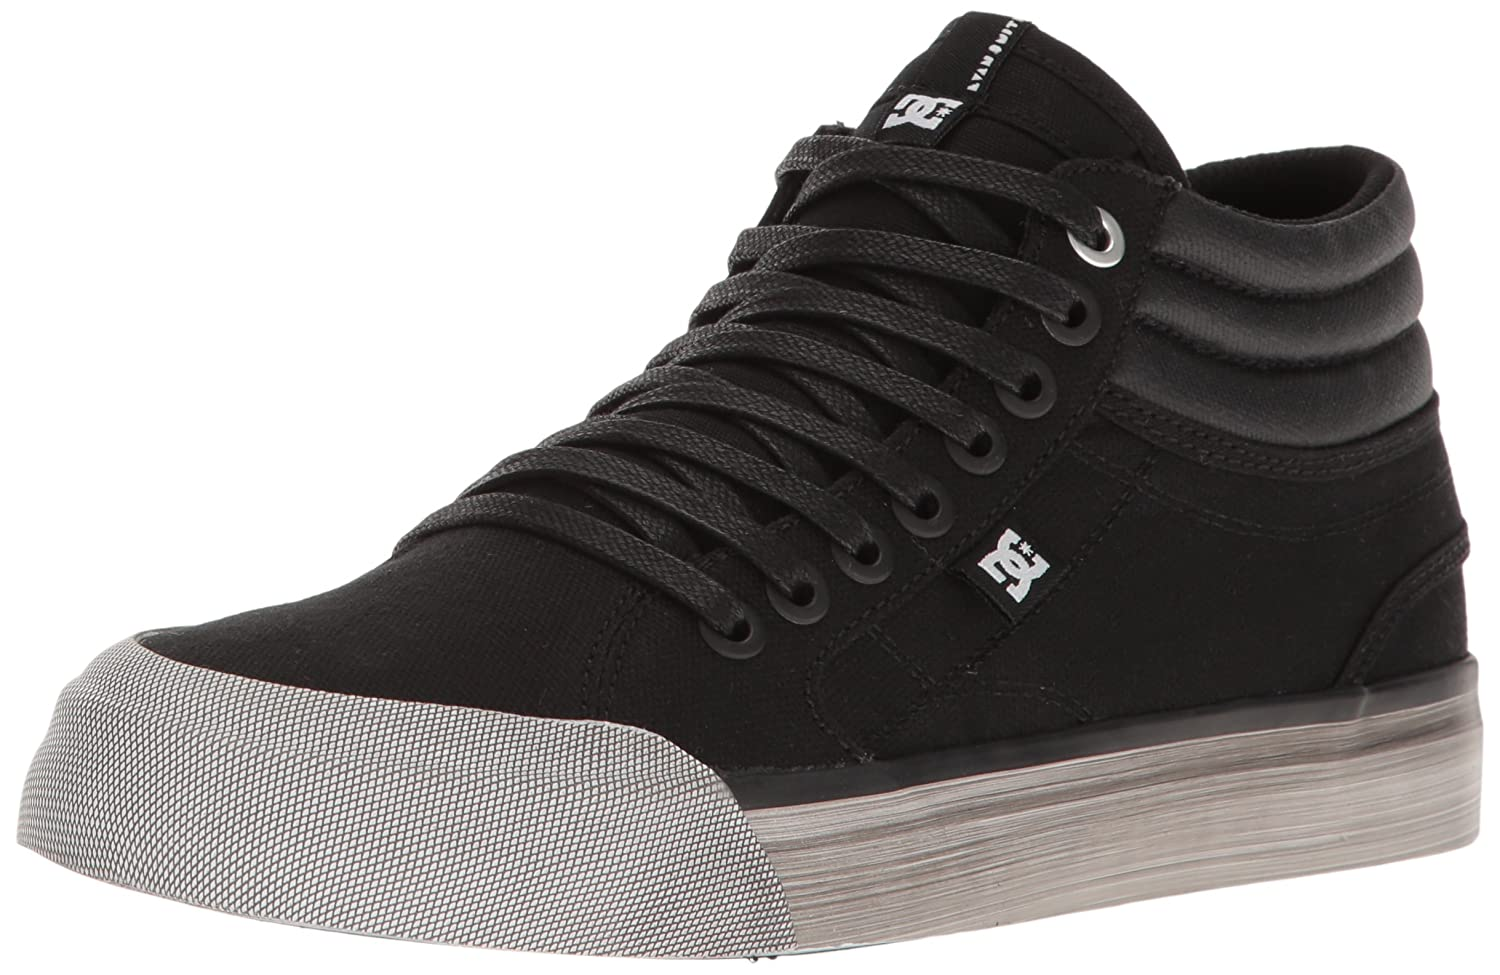 DC Women's Evan Hi Tx Se W Skate Shoe B01L3LVH42 5 B(M) US|Black Acid